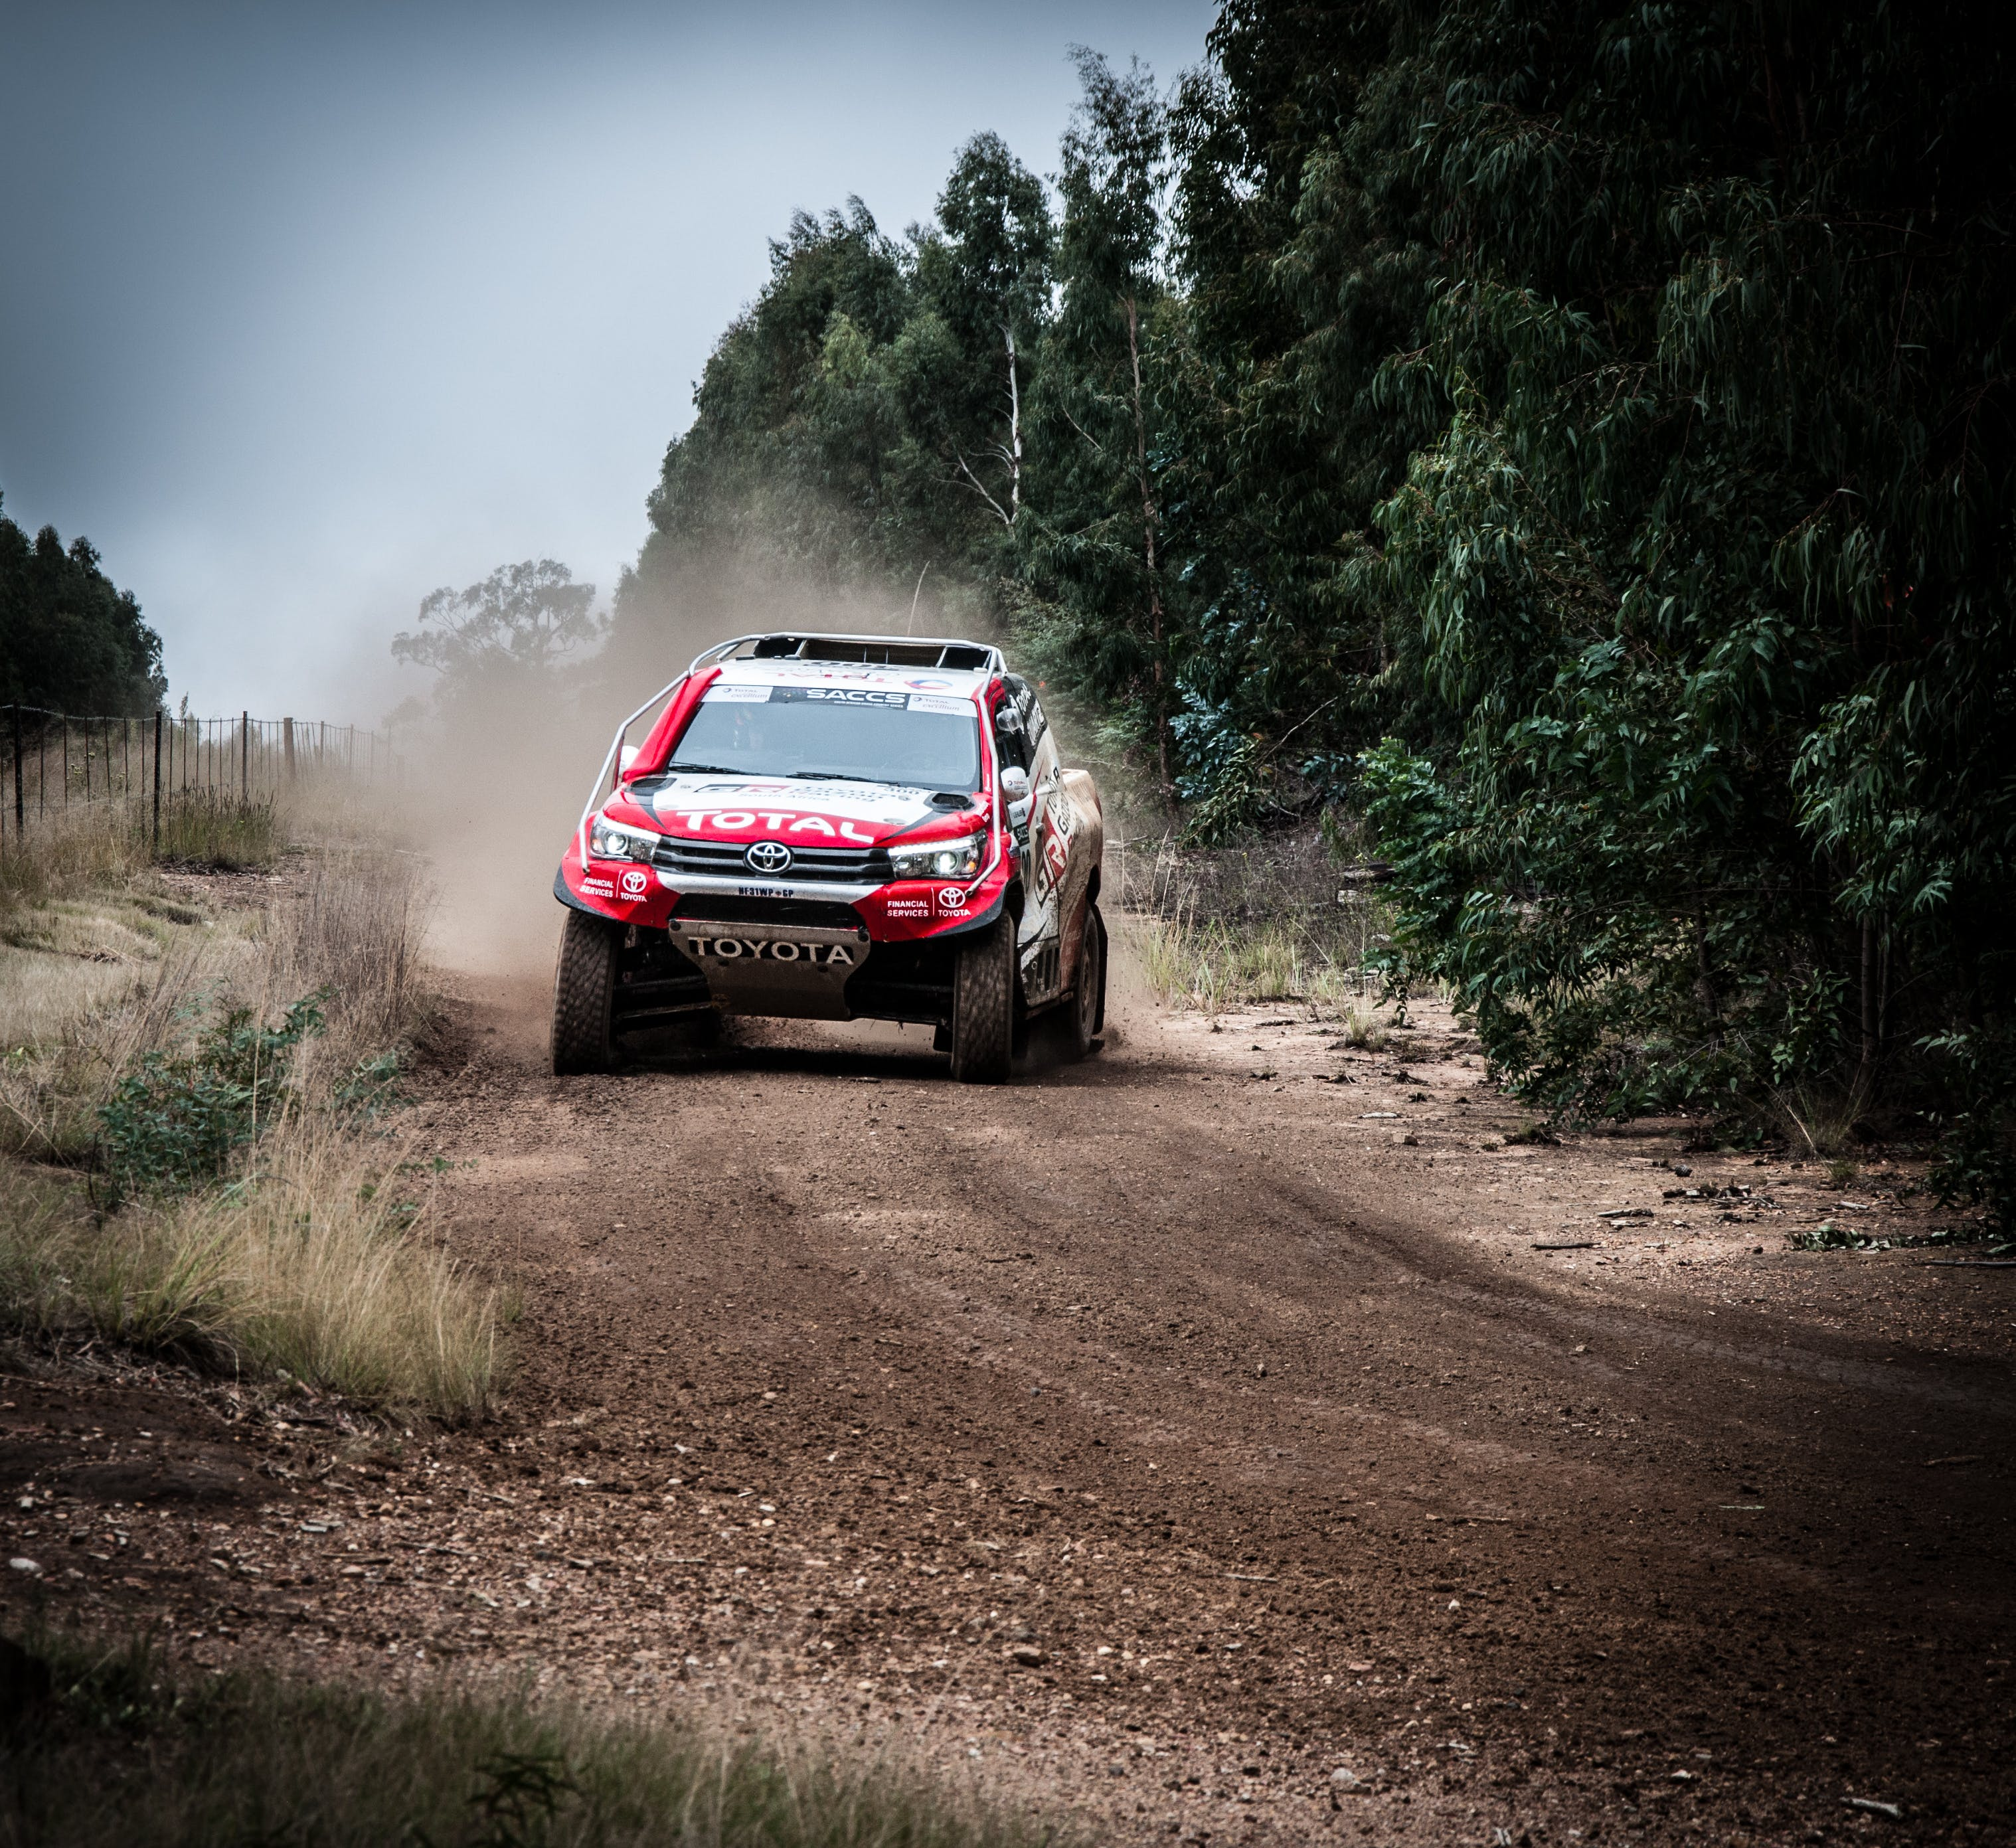 Red Toyota Vehicle On Rough Road